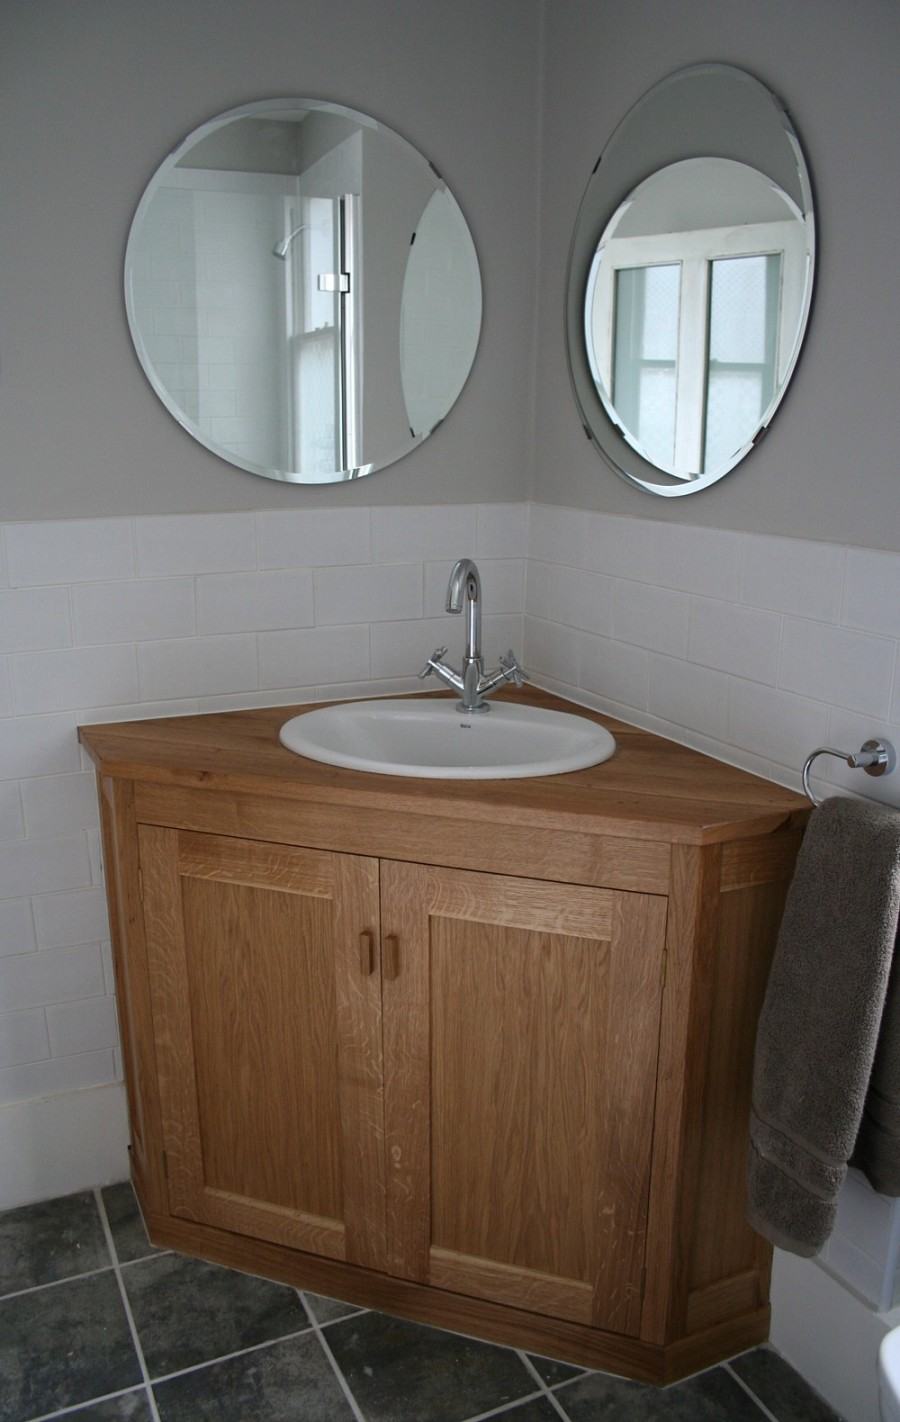 Fascinating Round Wall Mirrors Above Wooden Corner Bathroom Vanity With White Mounted Sink Marc And Mandy Show